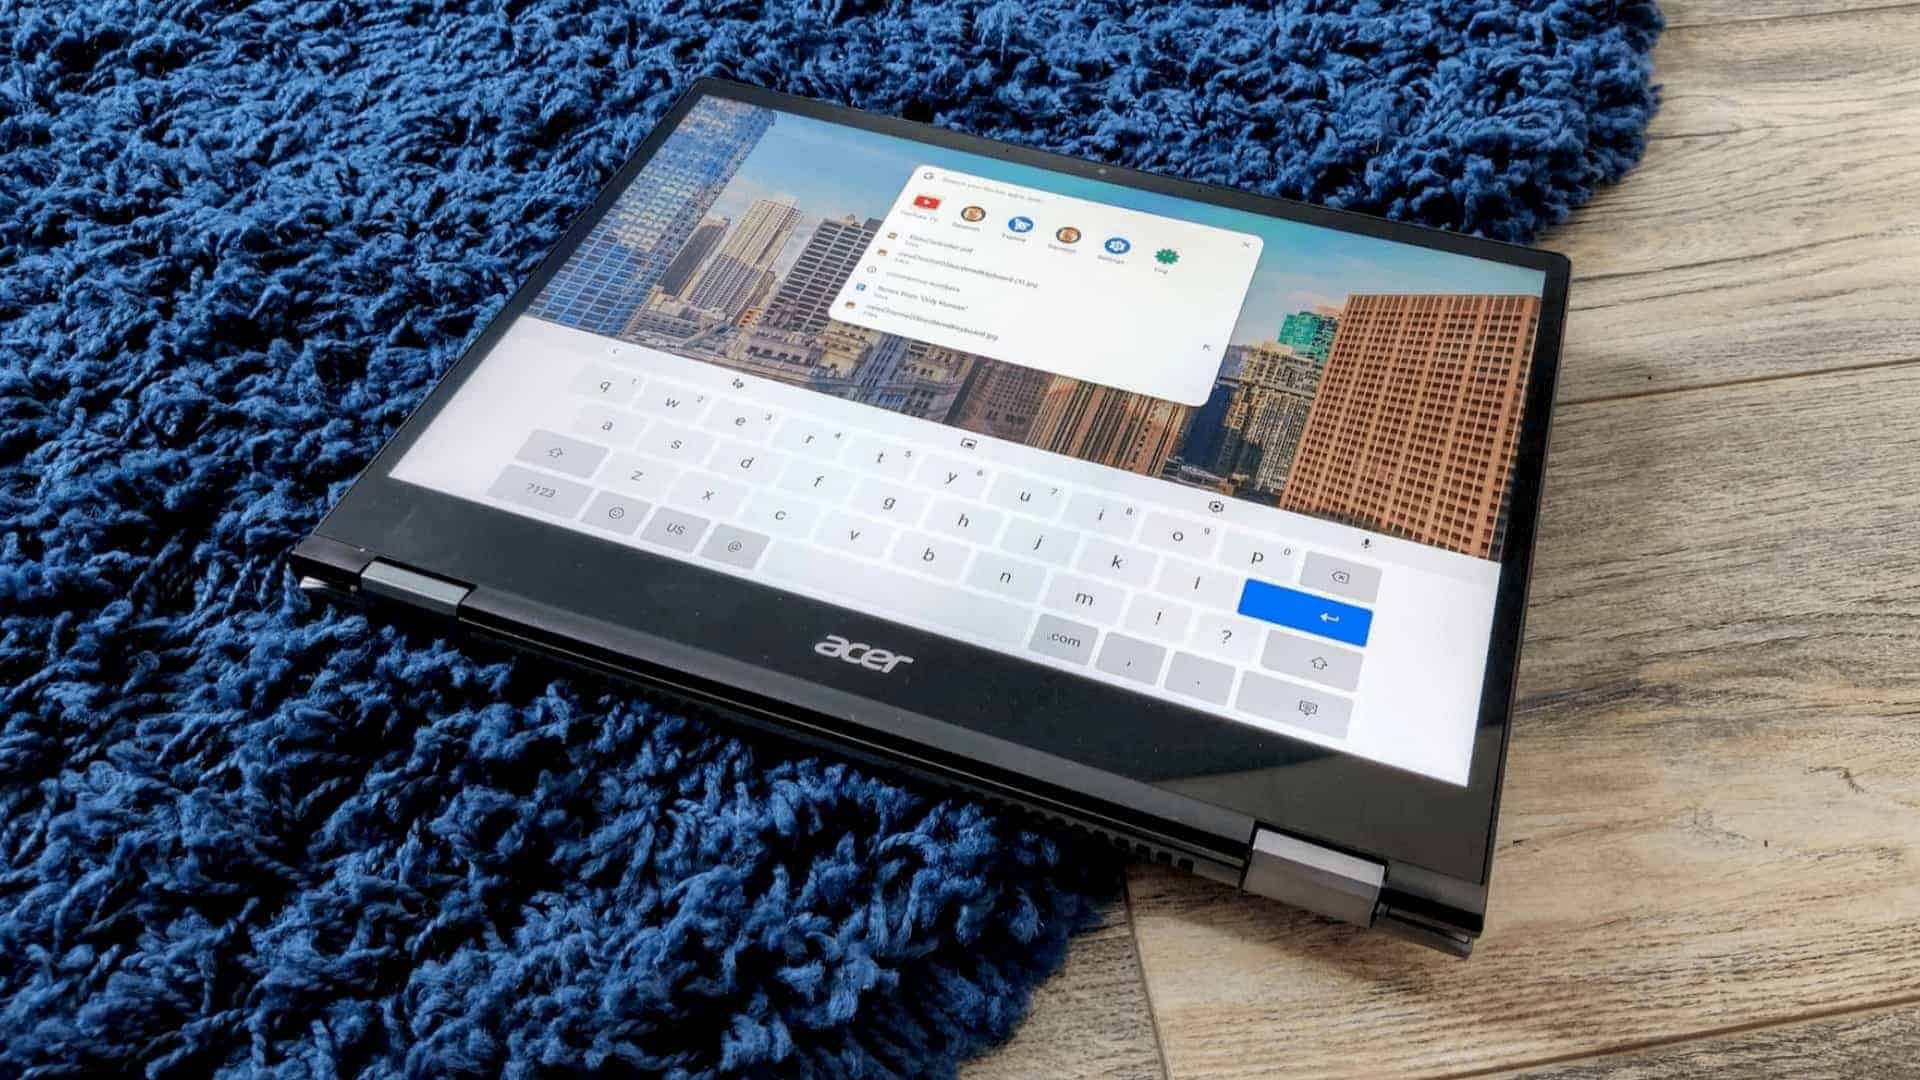 Chrome OS 85 virtual keyboard update bordered keys from Chrome Unboxed